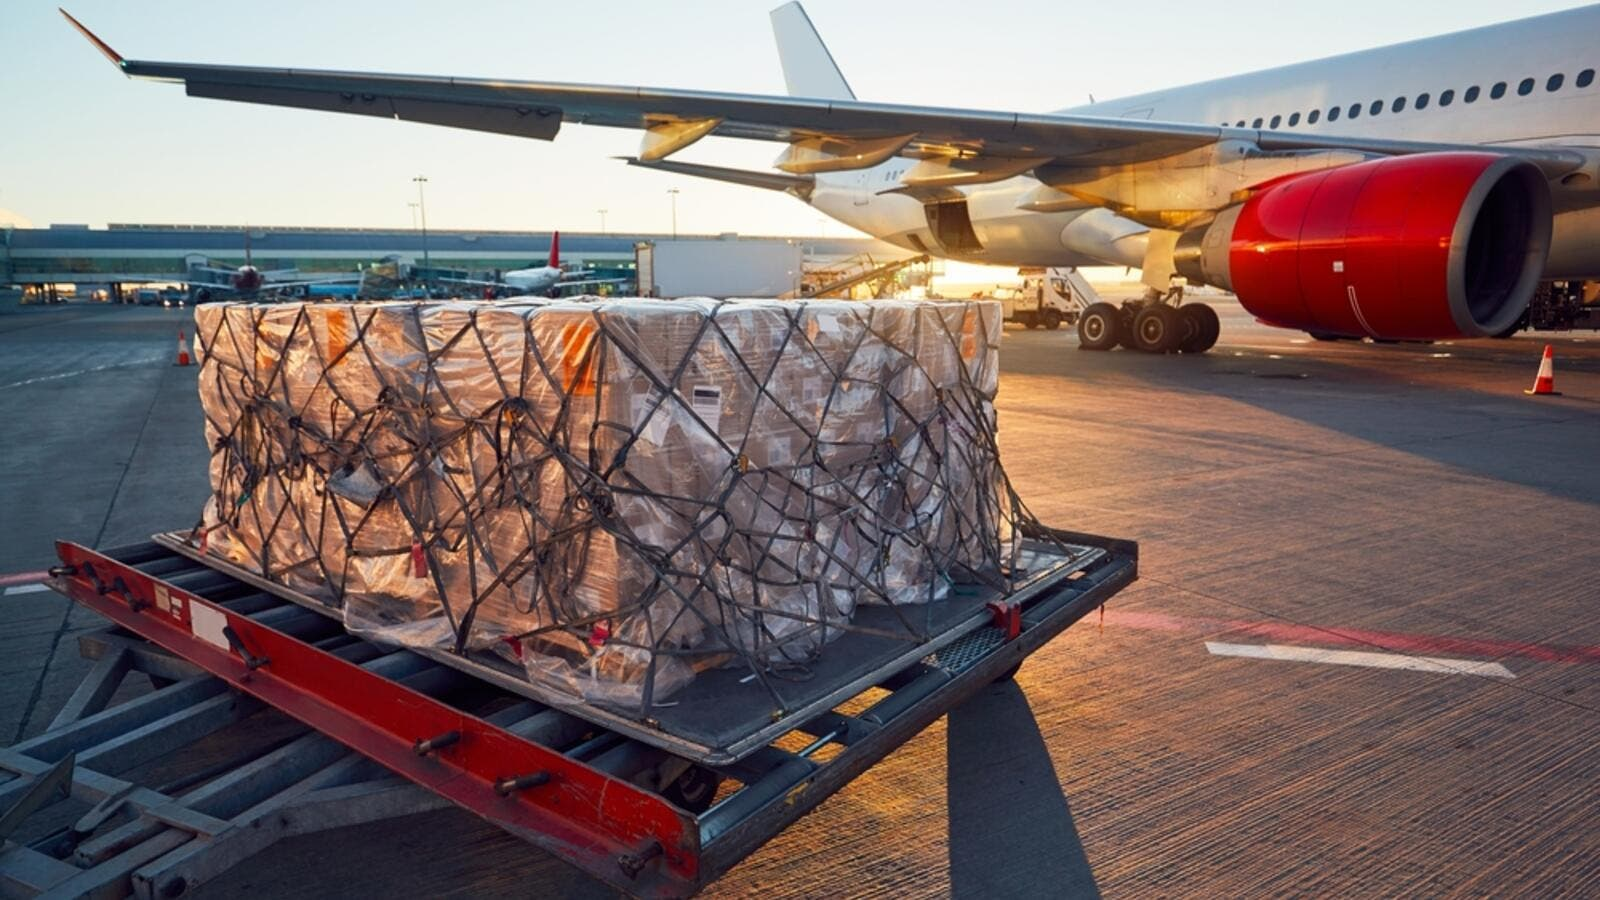 COVID-19 Results In the Rise of Demand for Urgent Cargo Shipments